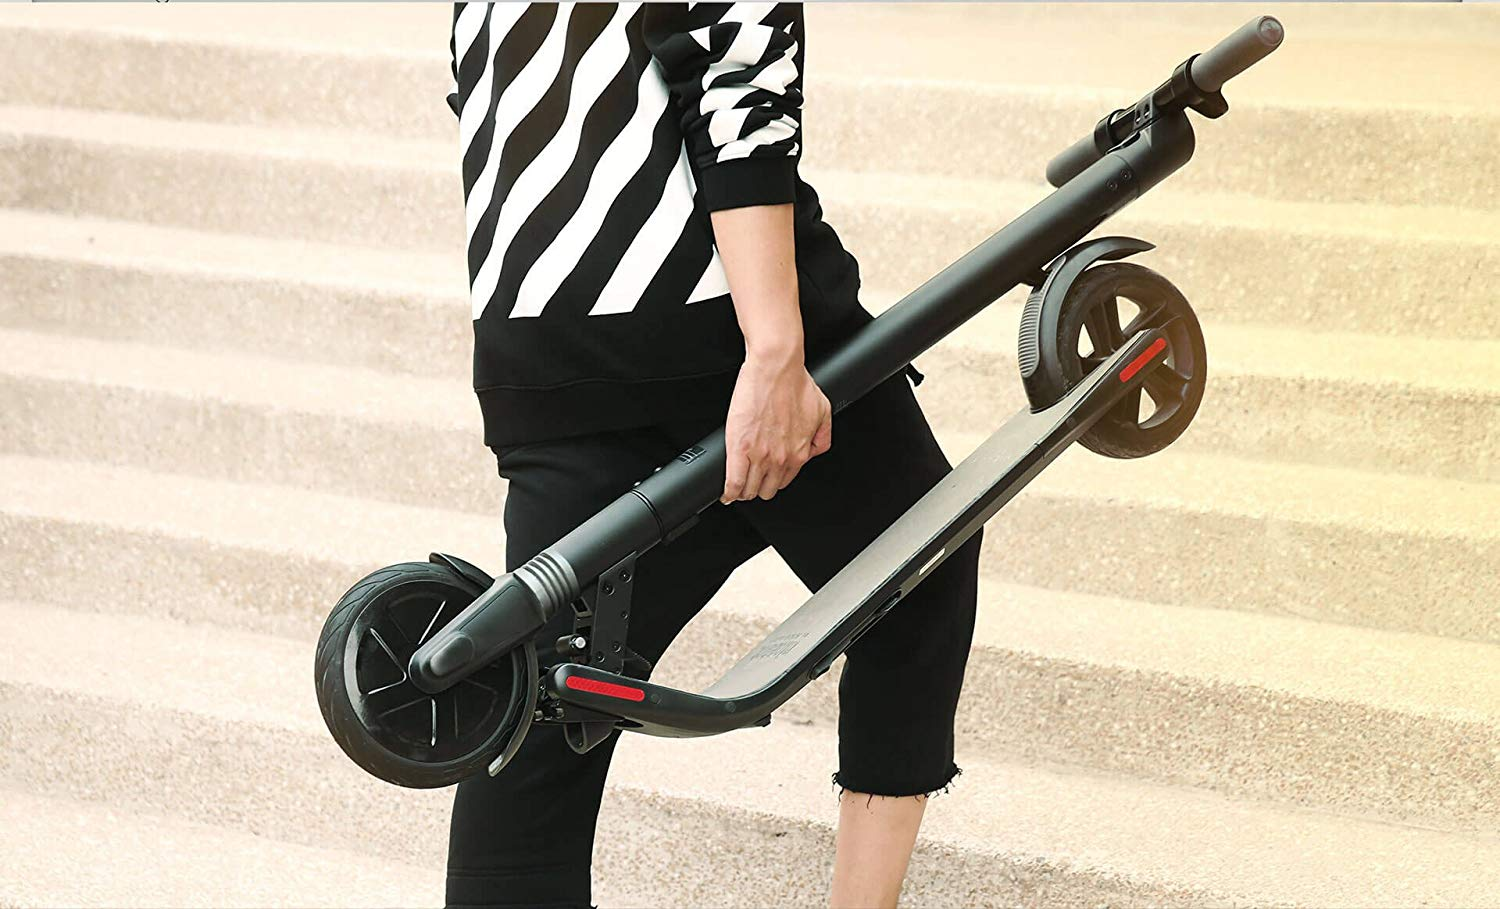 trottinette électrique Ninebot ES1 by Segway transportée à la main